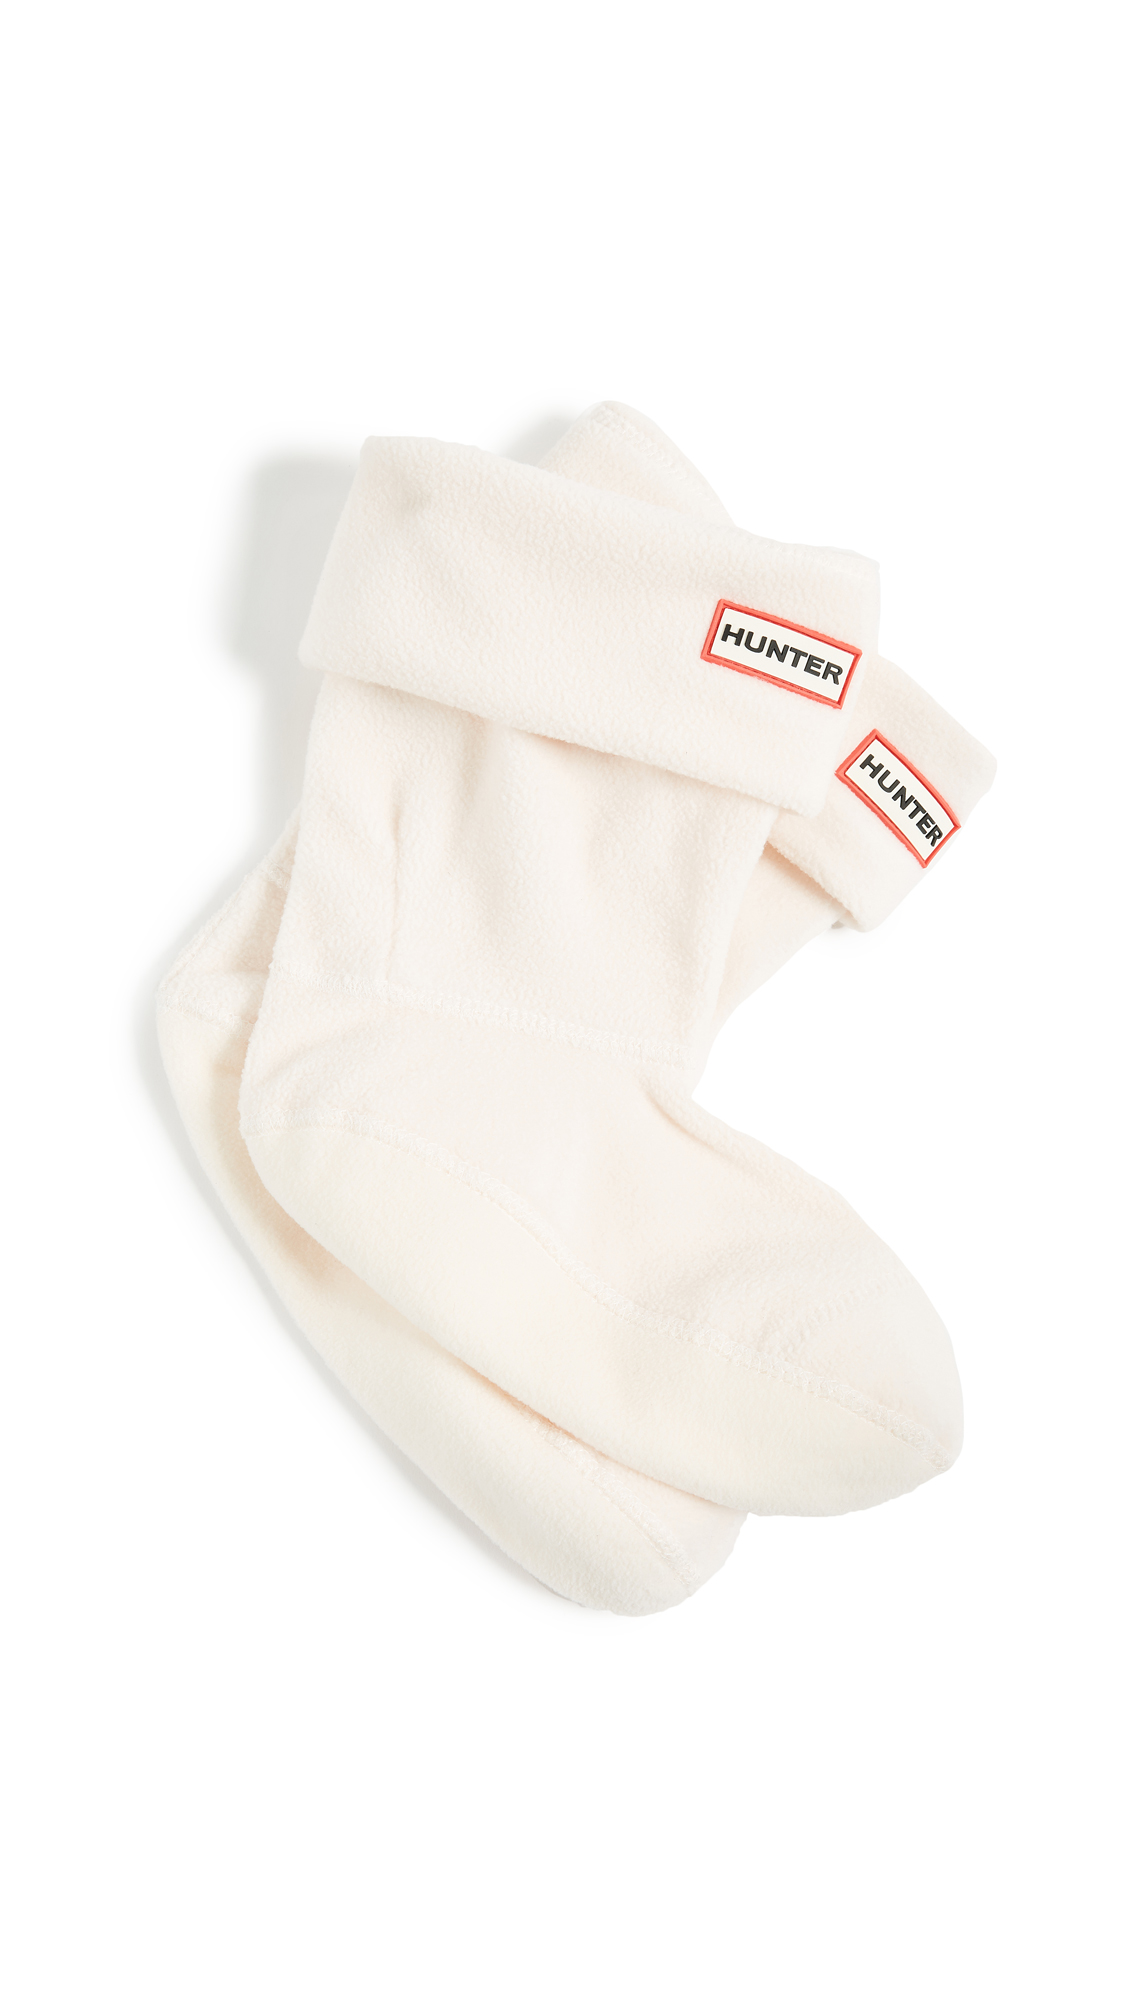 Hunter Boots Short Boot Socks - 30% Off Sale